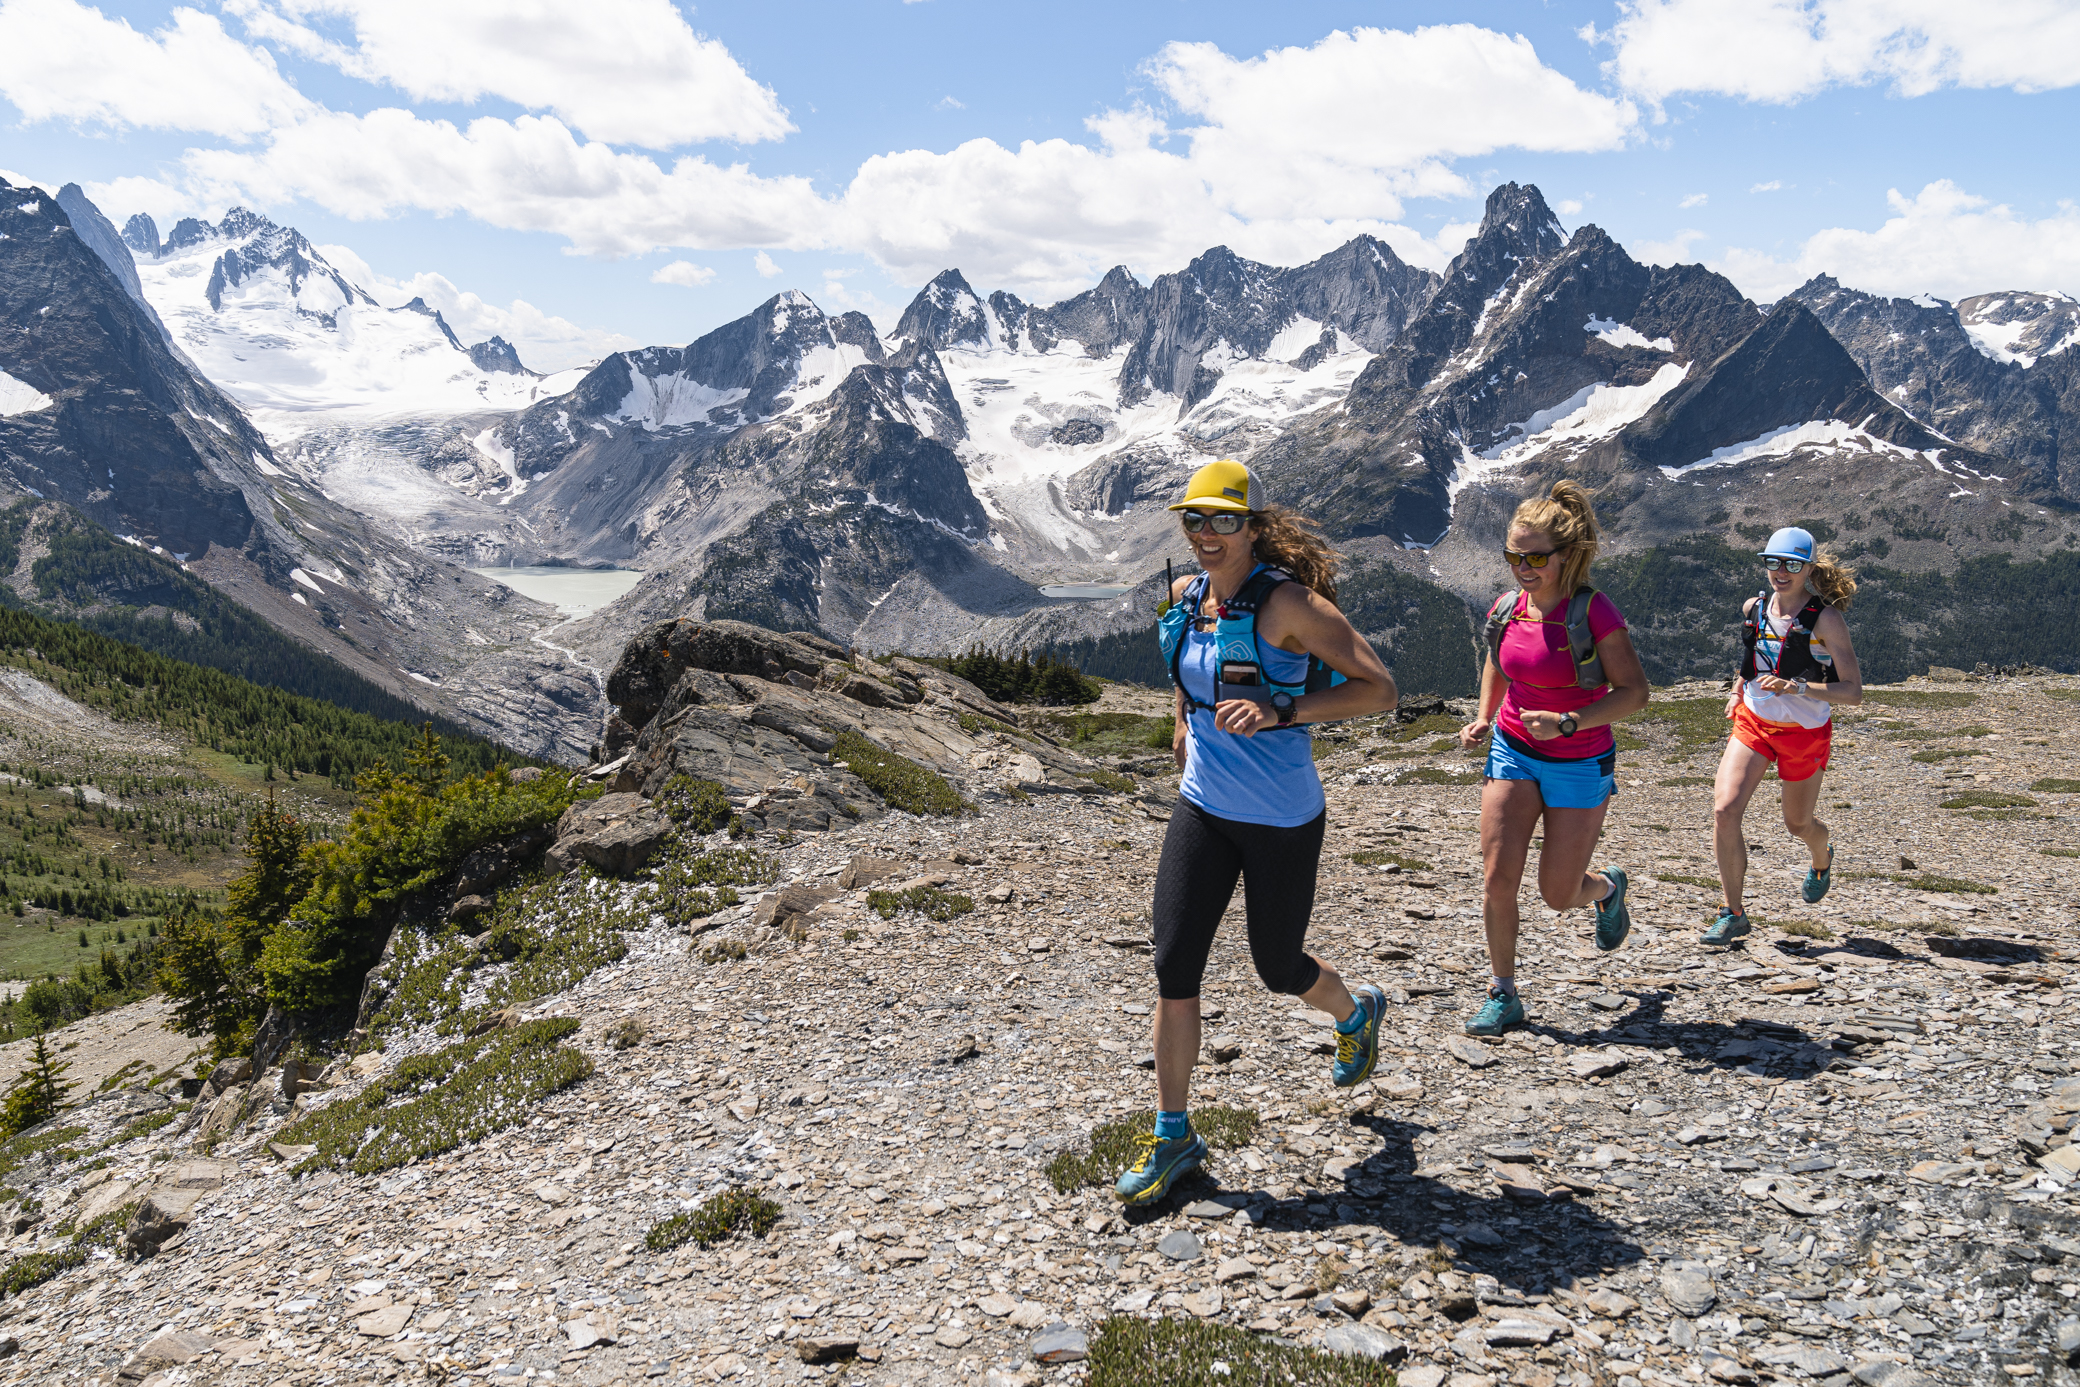 Guide Emily Compton on one of our Bugaboo Heli Alpine Running trips